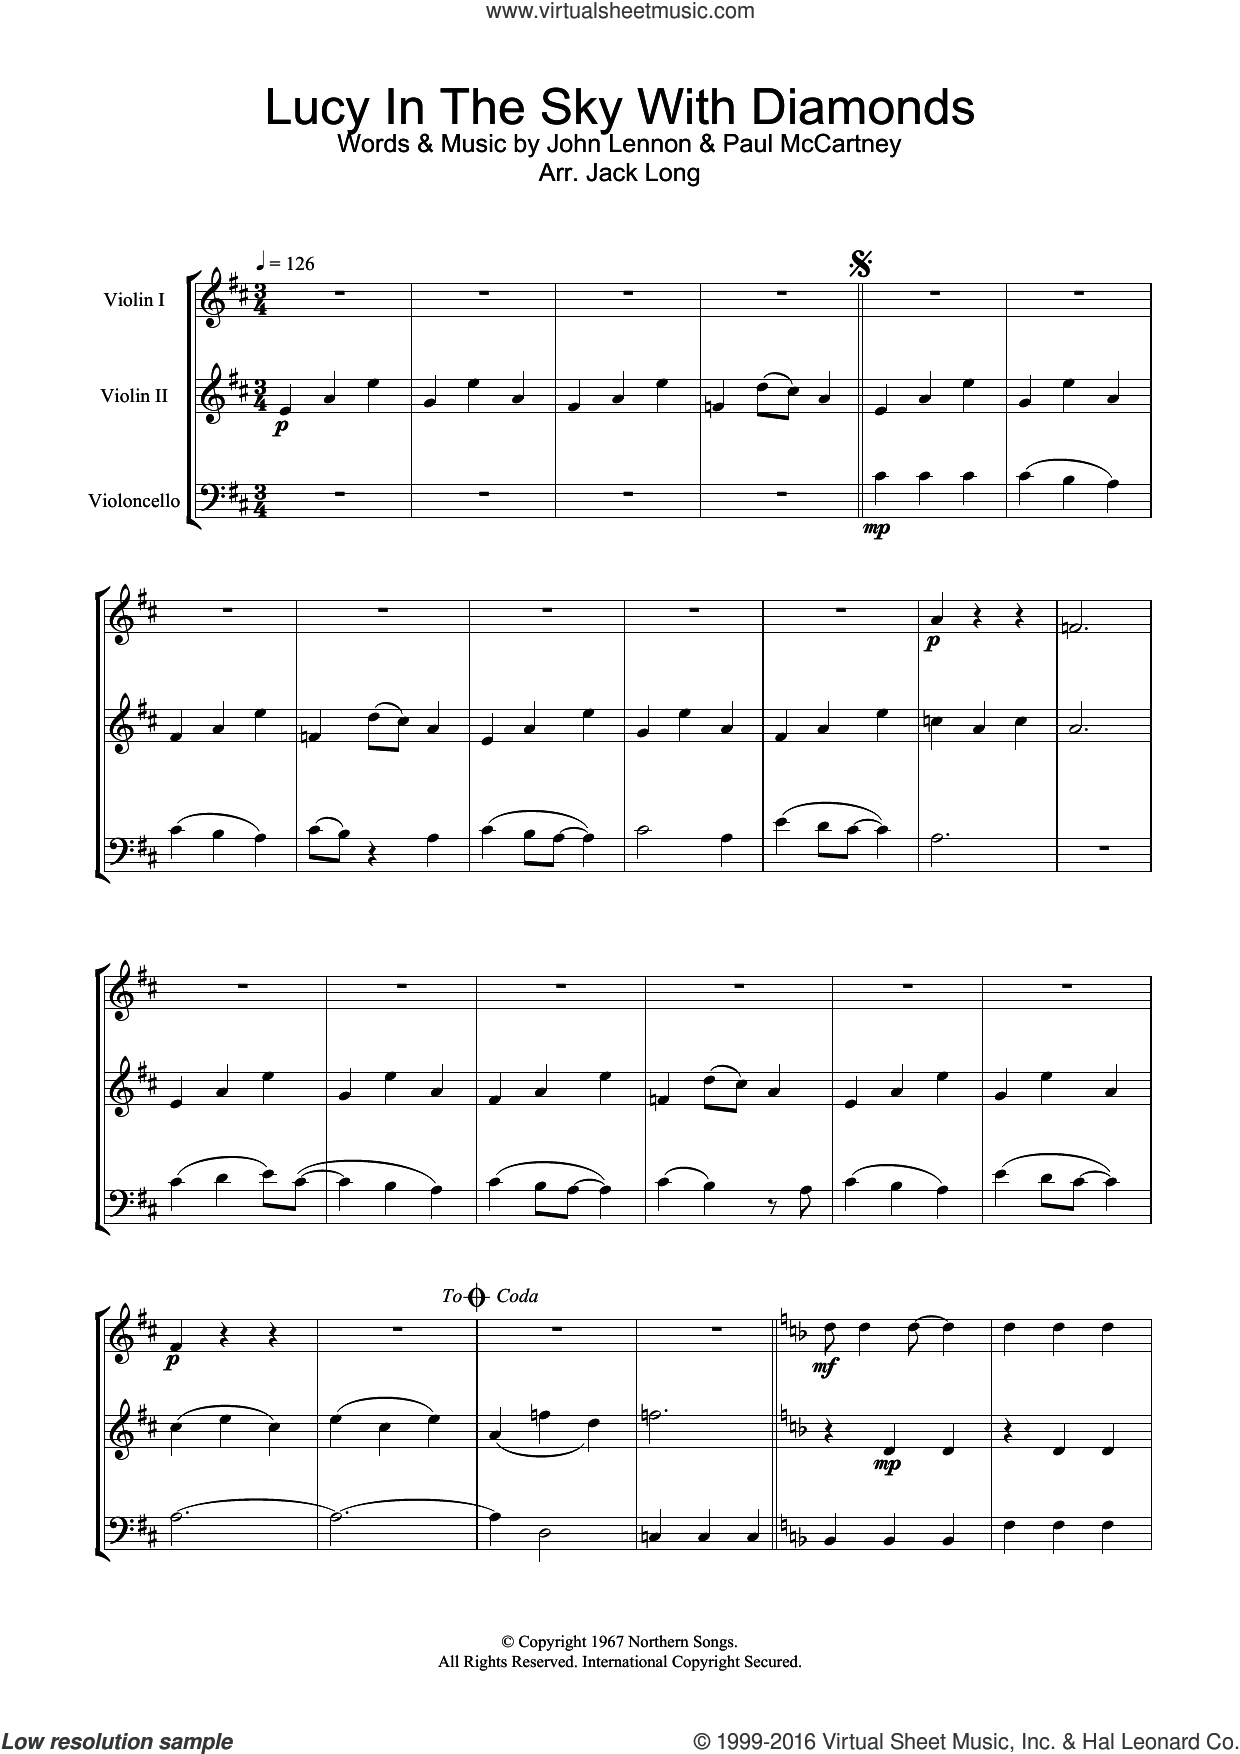 Lucy In The Sky With Diamonds sheet music for violin solo by The Beatles, John Lennon and Paul McCartney, intermediate skill level